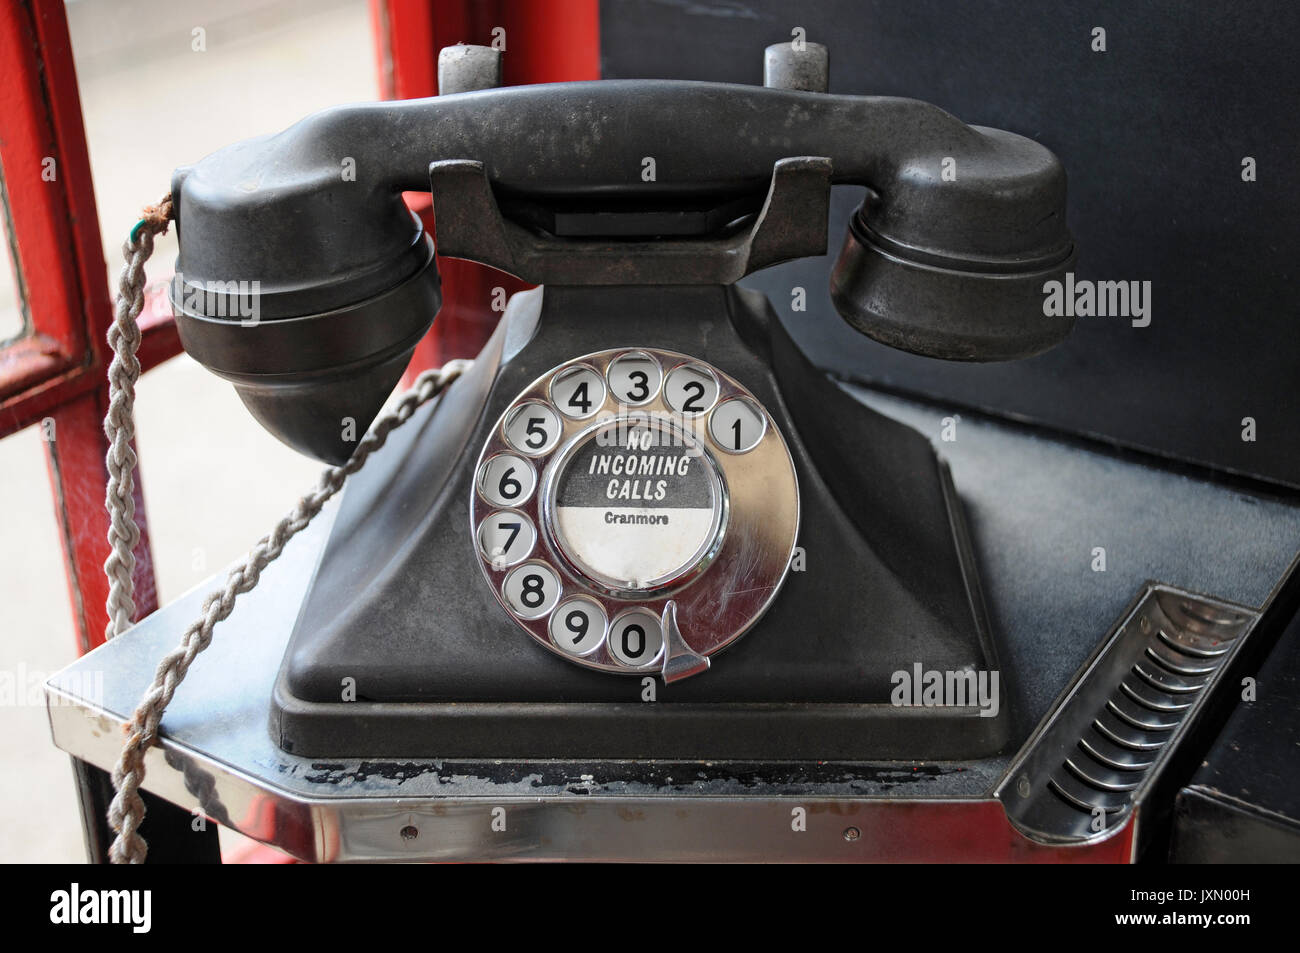 an old Bakelite telephone - Stock Image